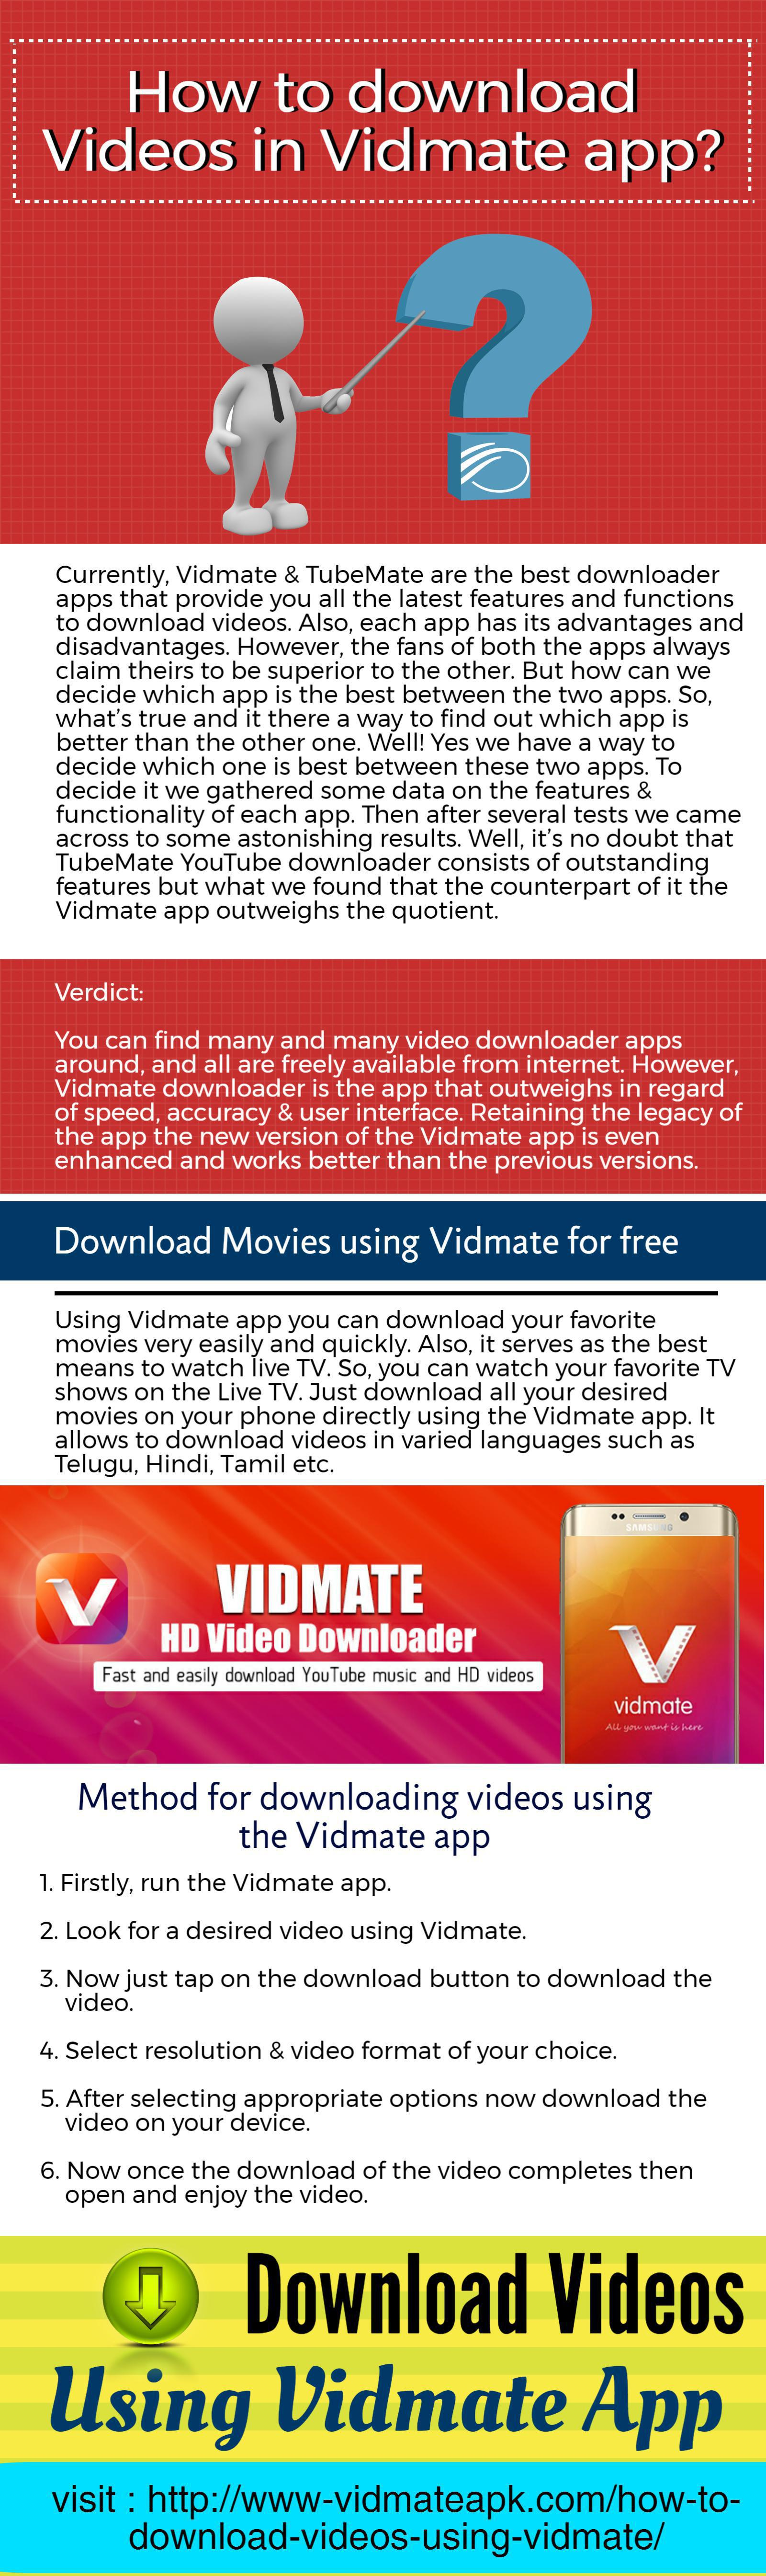 How To Download Videos In Vidmate App? - LockerDome